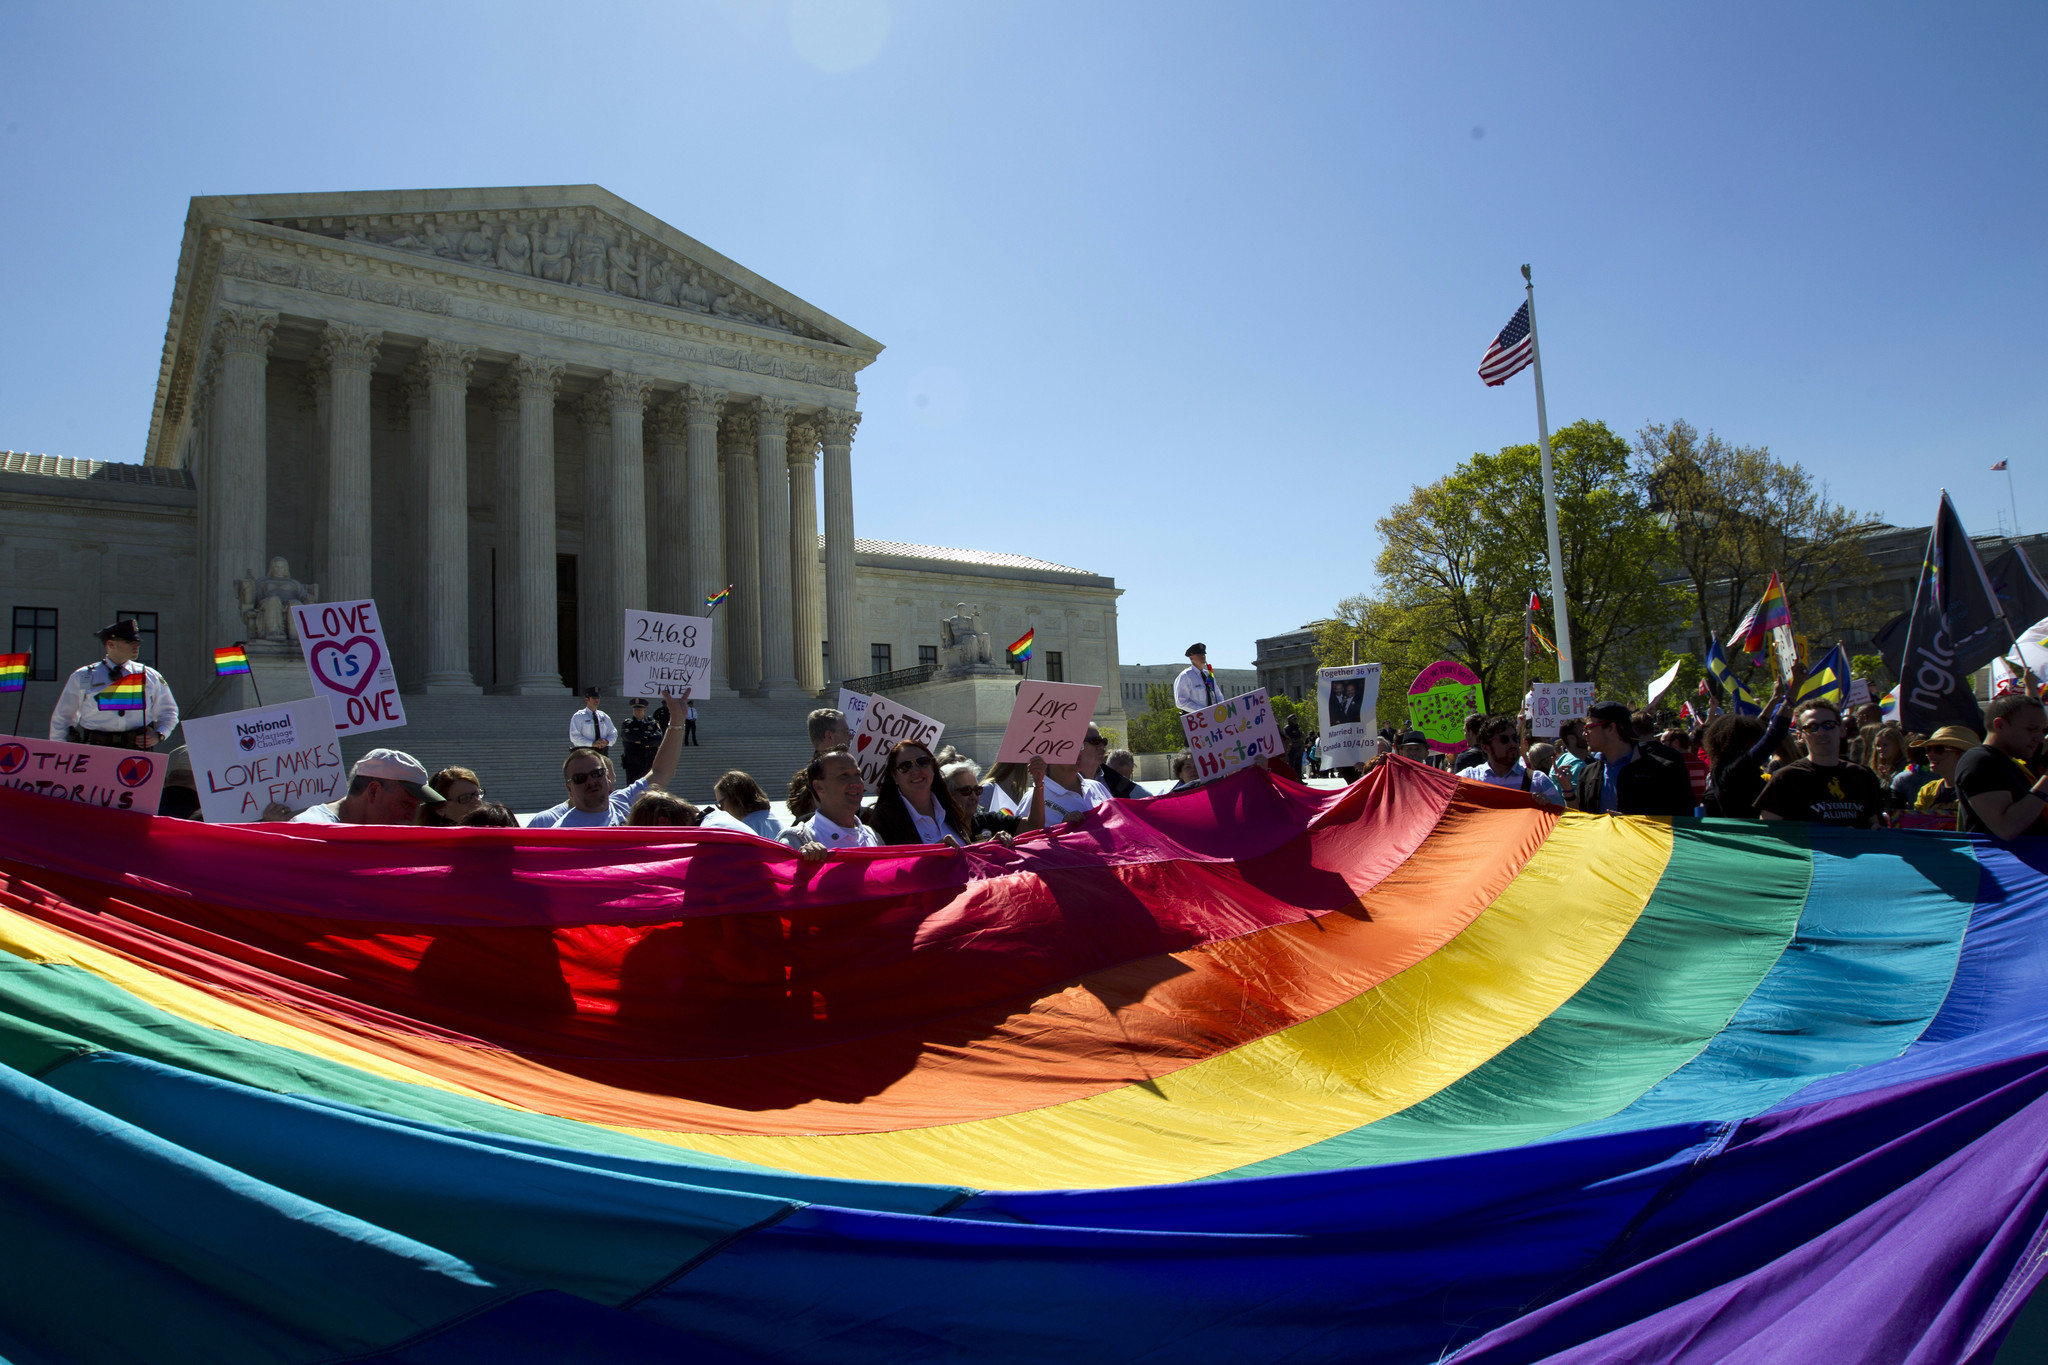 Couples, officials, foes readying for U.S. gay marriage ruling